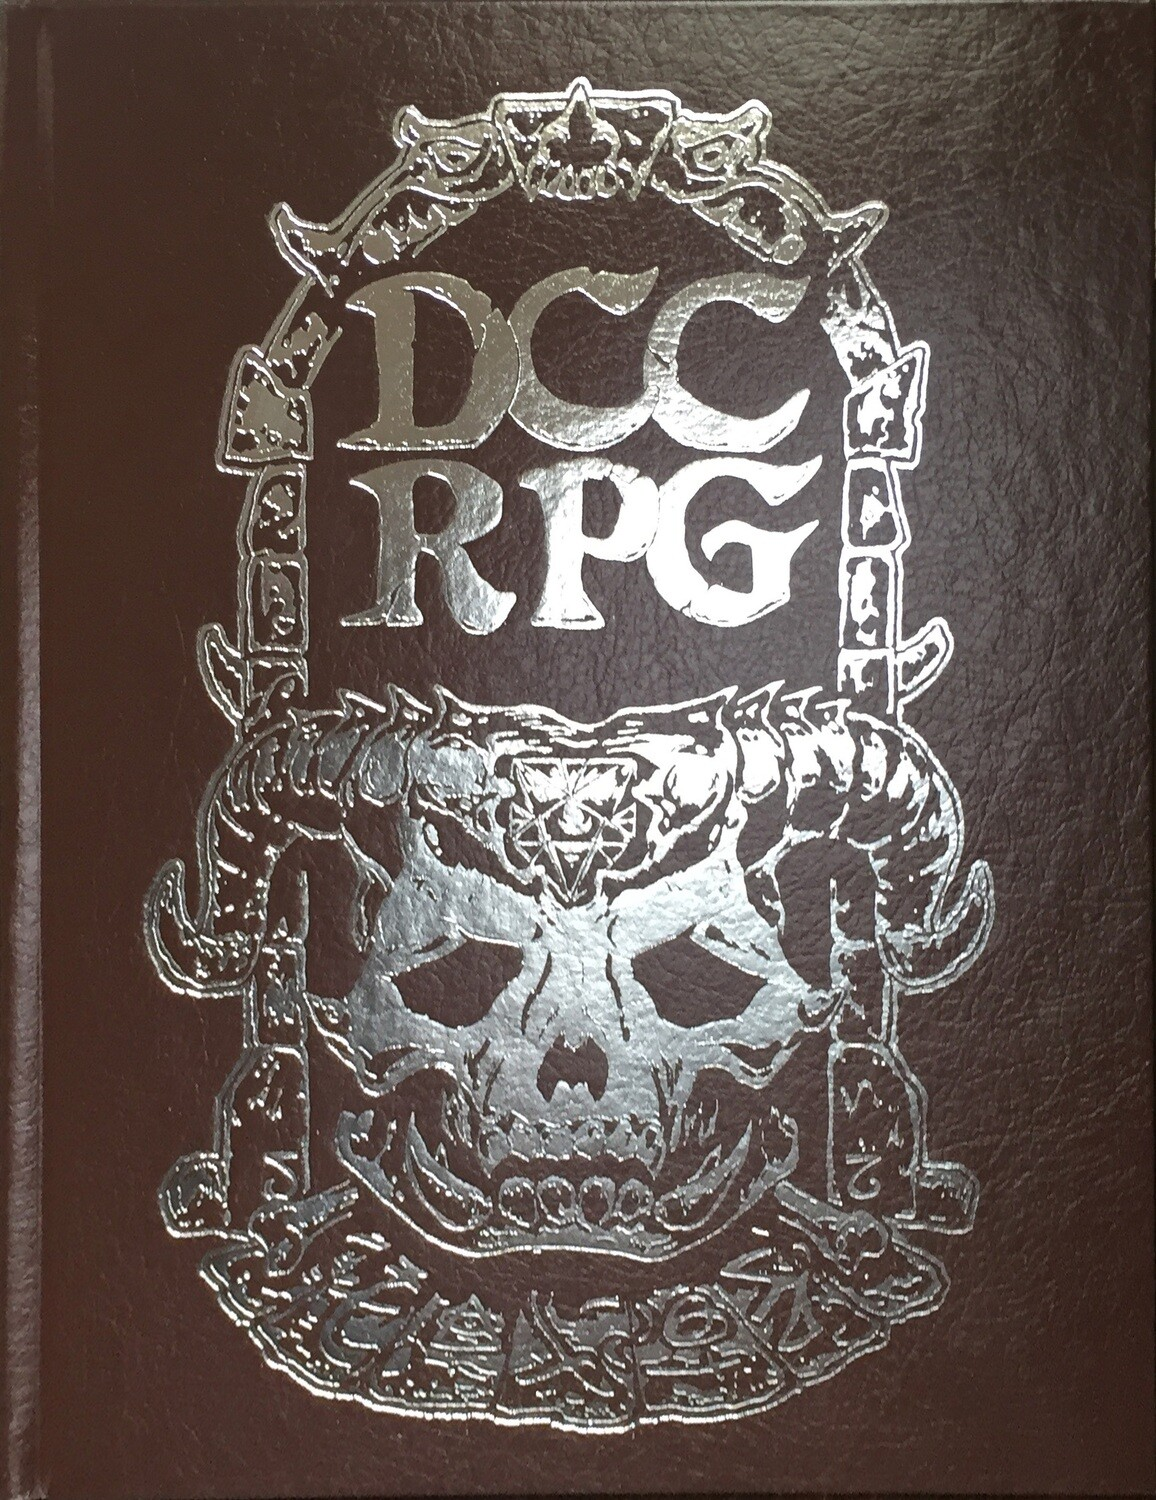 Dungeon Crawl Classics RPG Silver Foil Skull Cover Hardcover Edition (7th Printing)